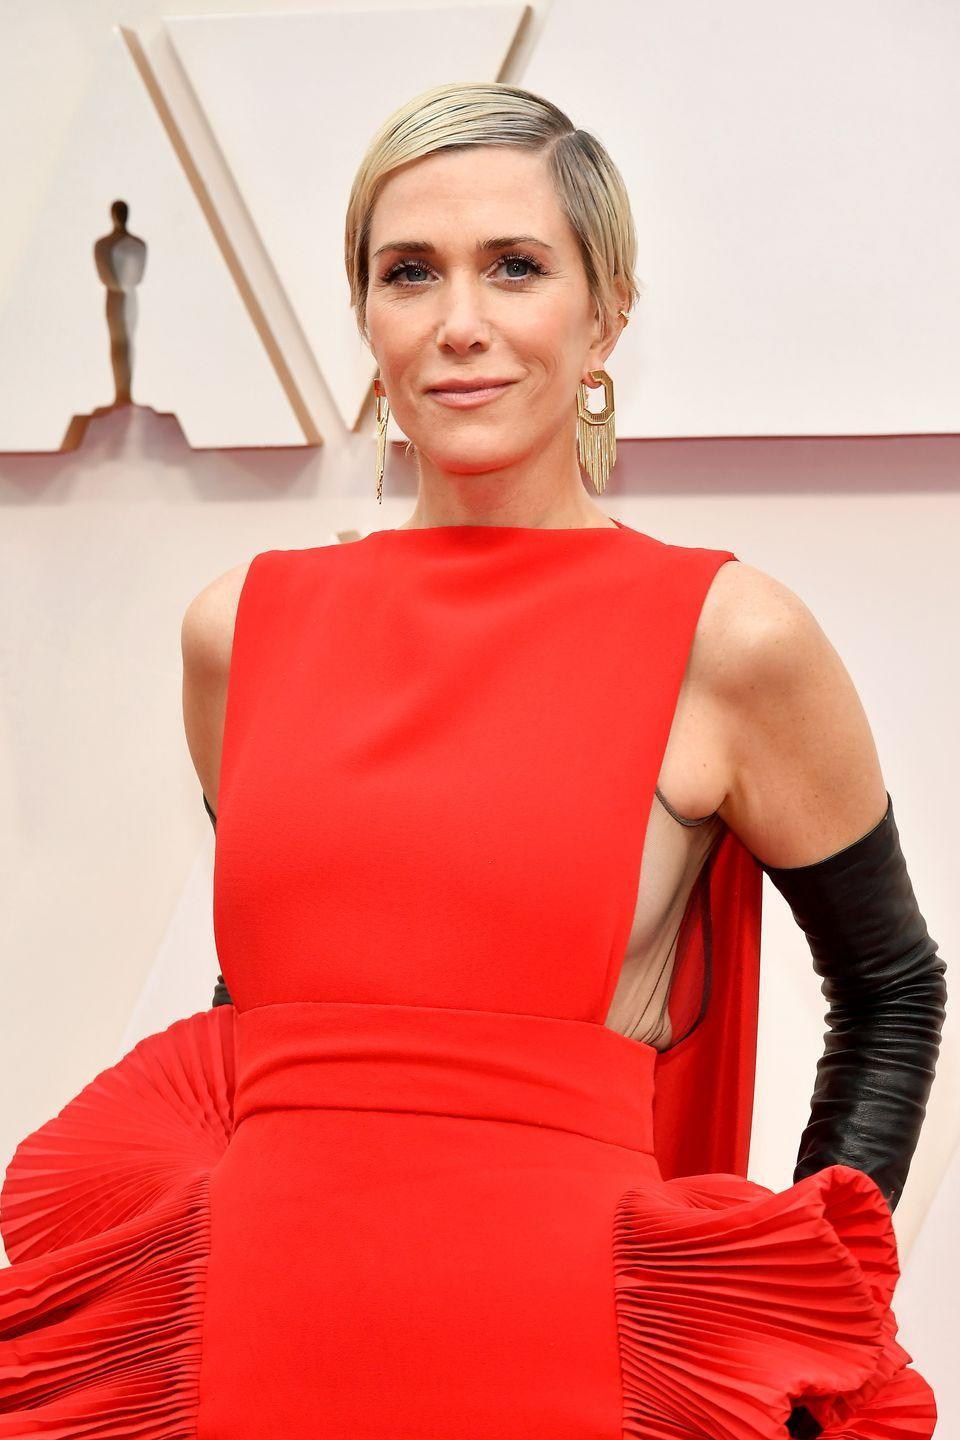 <p>As it turns out, a sleek, bleach blonde pixie cut is just as cool as it sounds, proven here by comedian Kristen Wiig.</p>